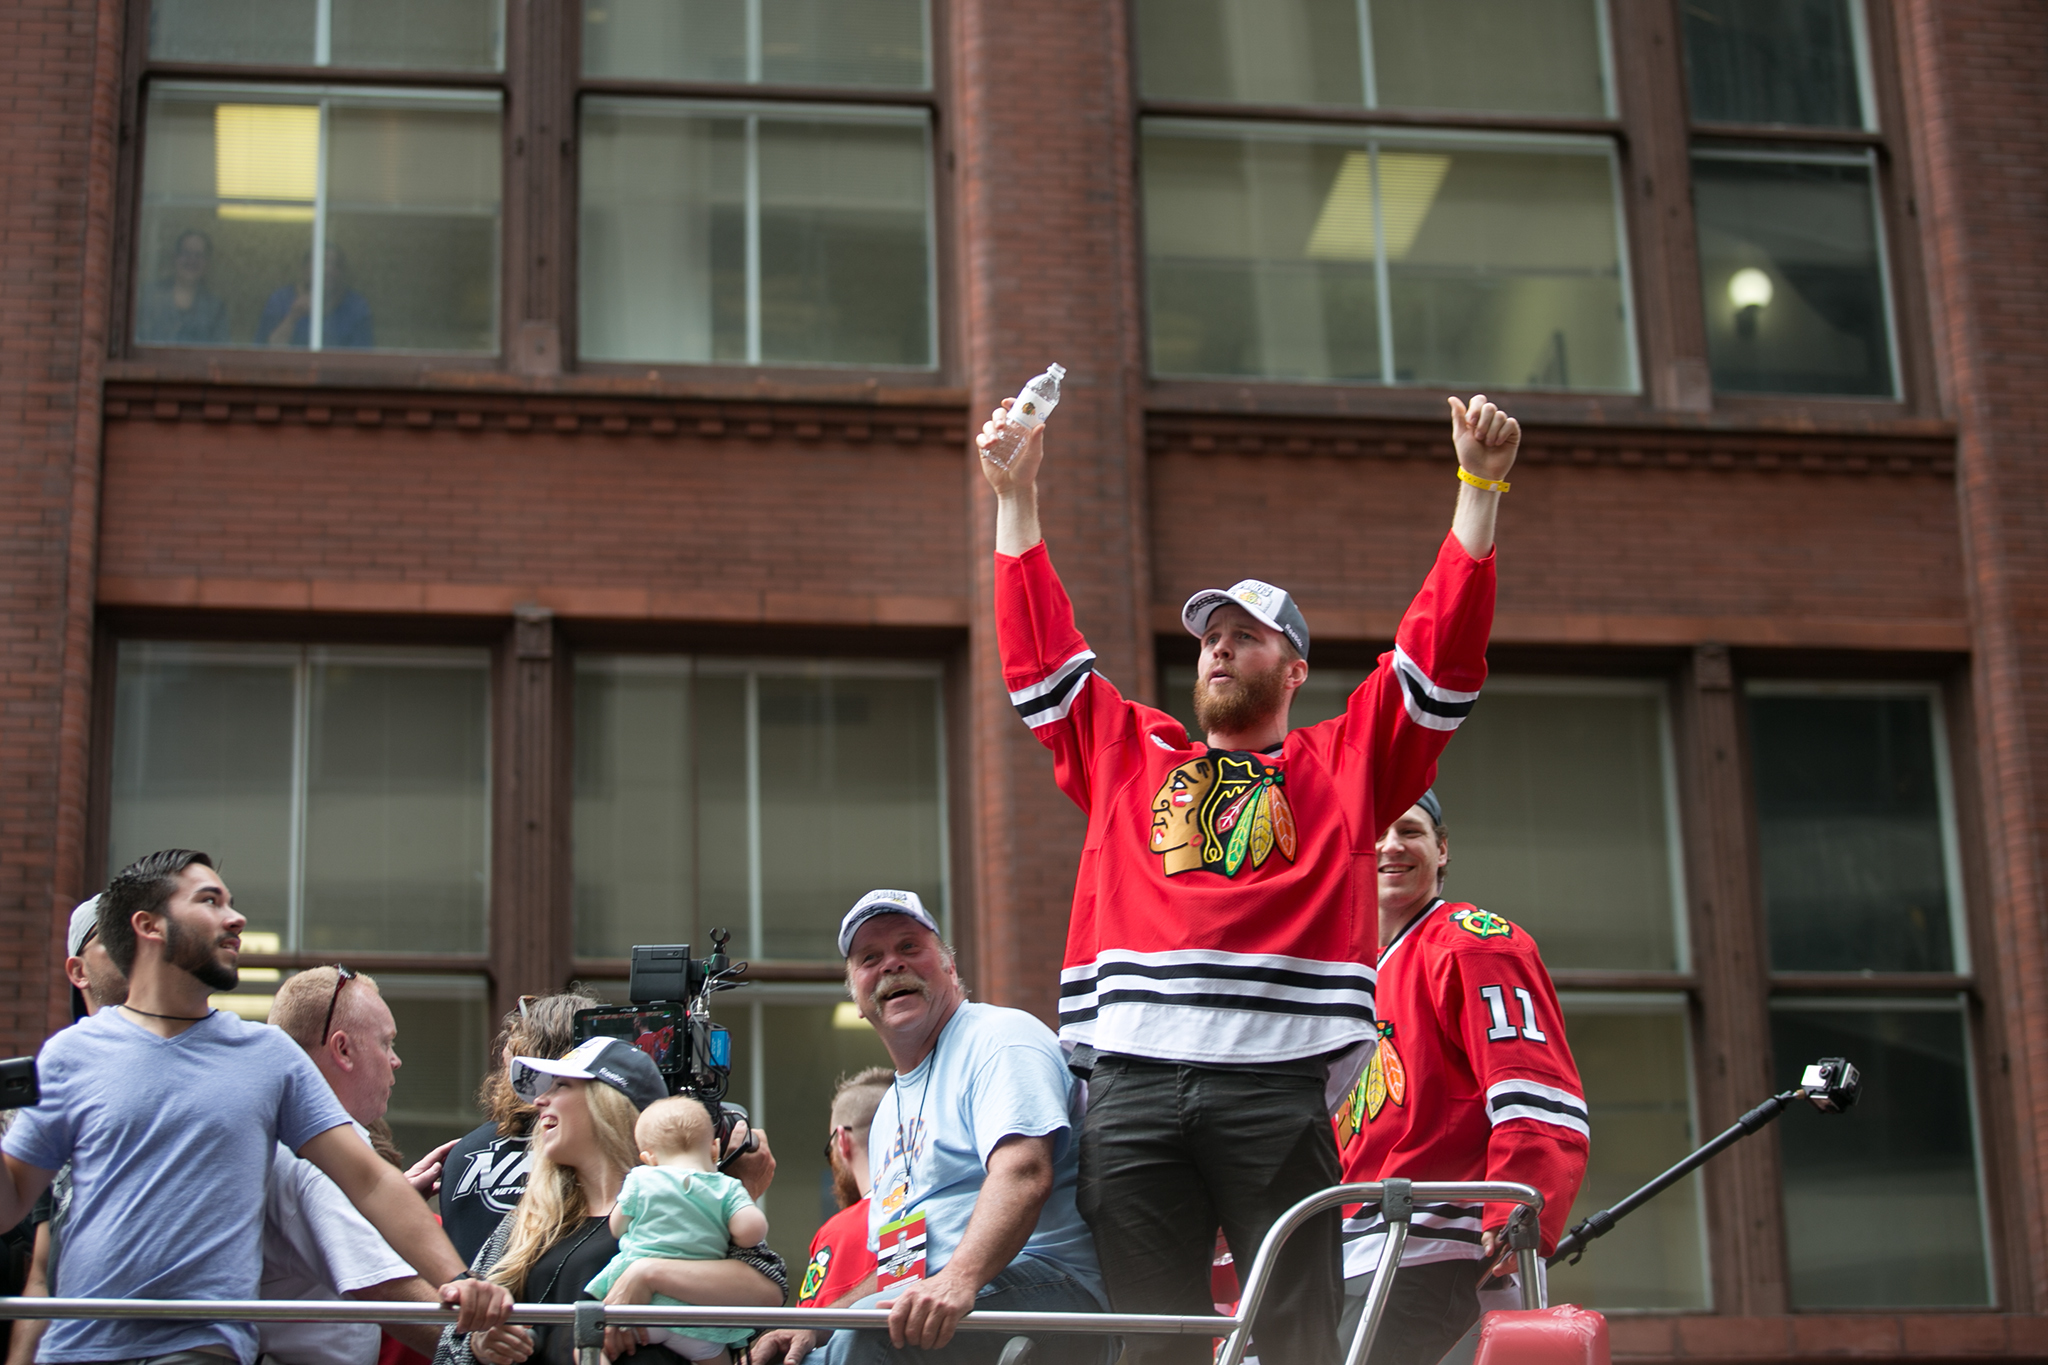 Thousands of fans gathered in the Loop for the Blackhawks Stanley Cup victory parade on June 18, 2015.